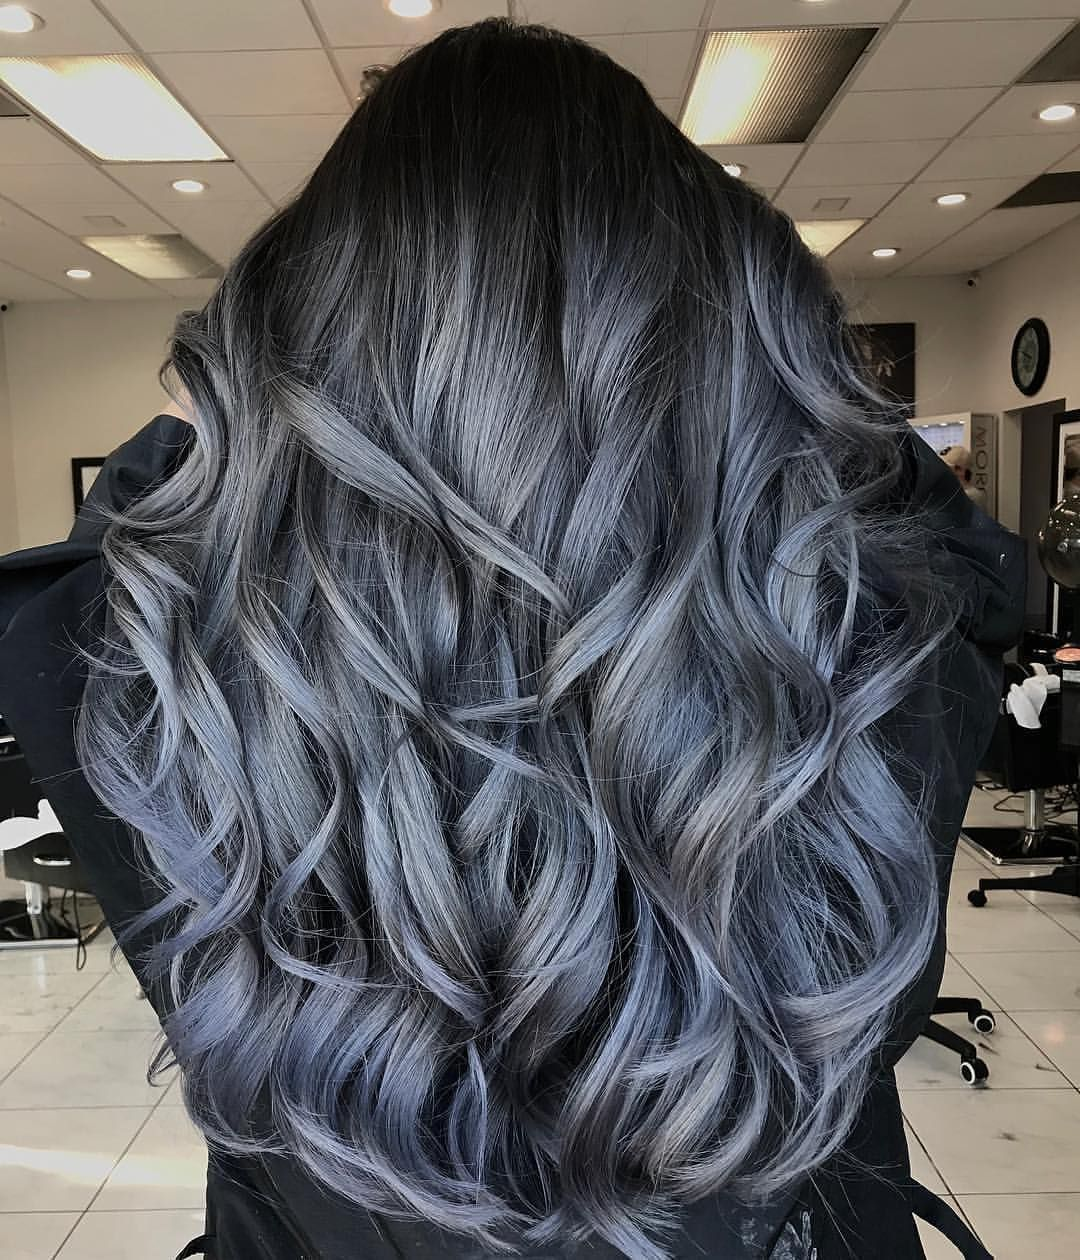 2020 New Gray Hair Wigs For African American Women China Wigs Gray Half Wigs Jeelly Shop Wigs Grey Hair Fade Santa Wig